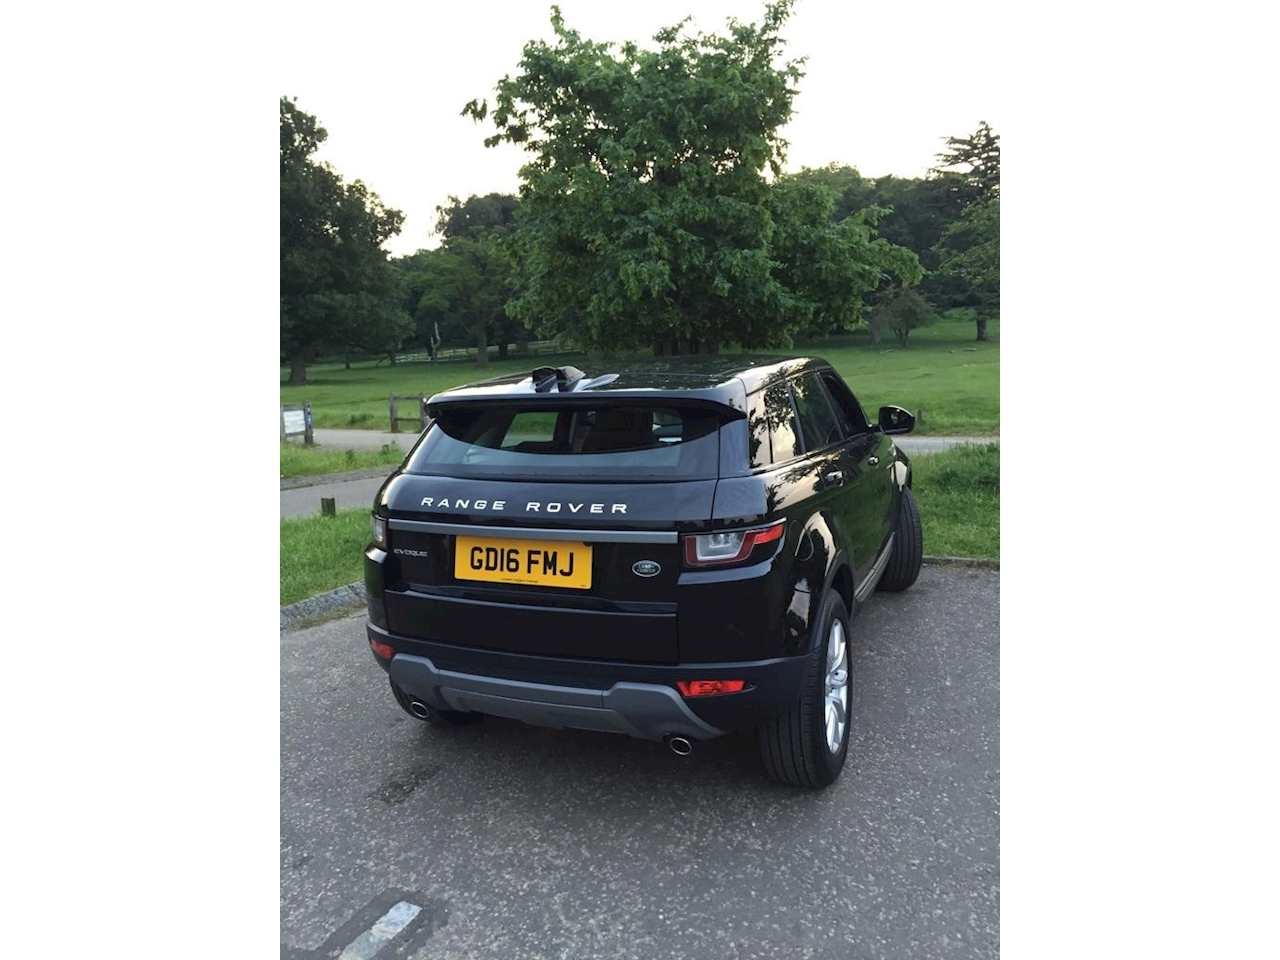 Range Rover Evoque Td4 Se Estate 2.0 Automatic Diesel